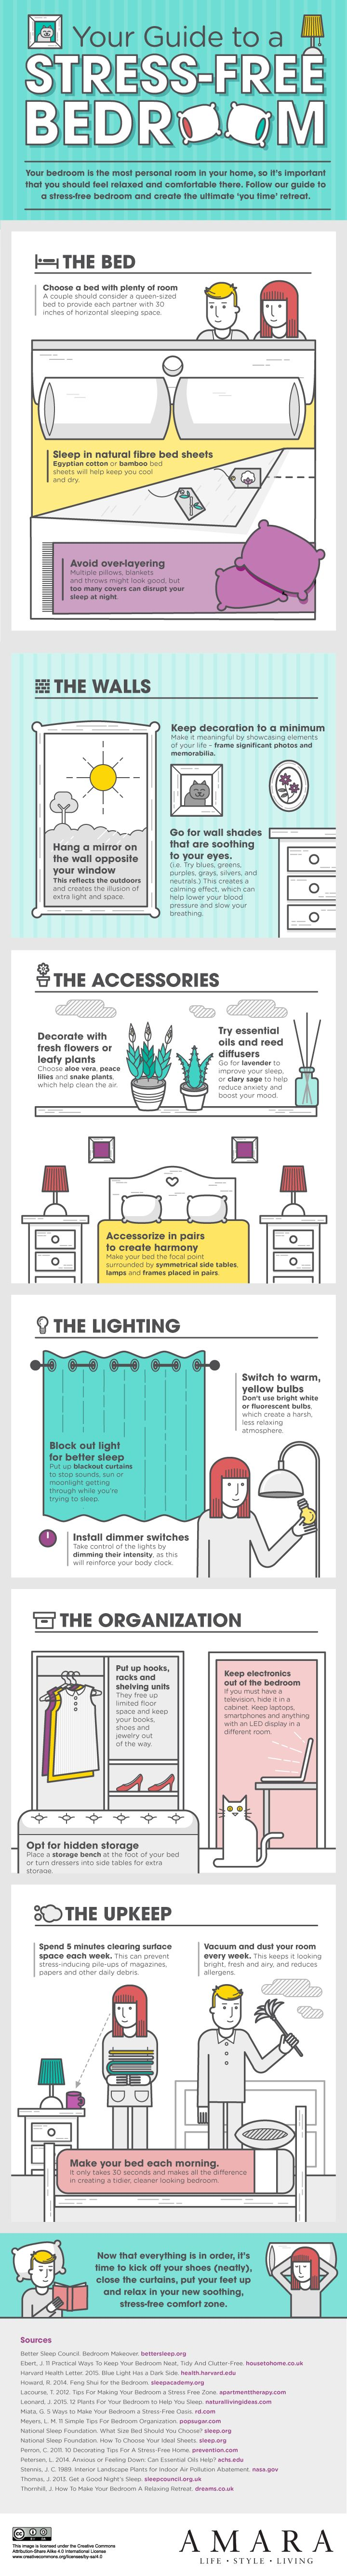 Your Foolproof Guide To Designing A Stress-Free Bedroom | Huffington Post